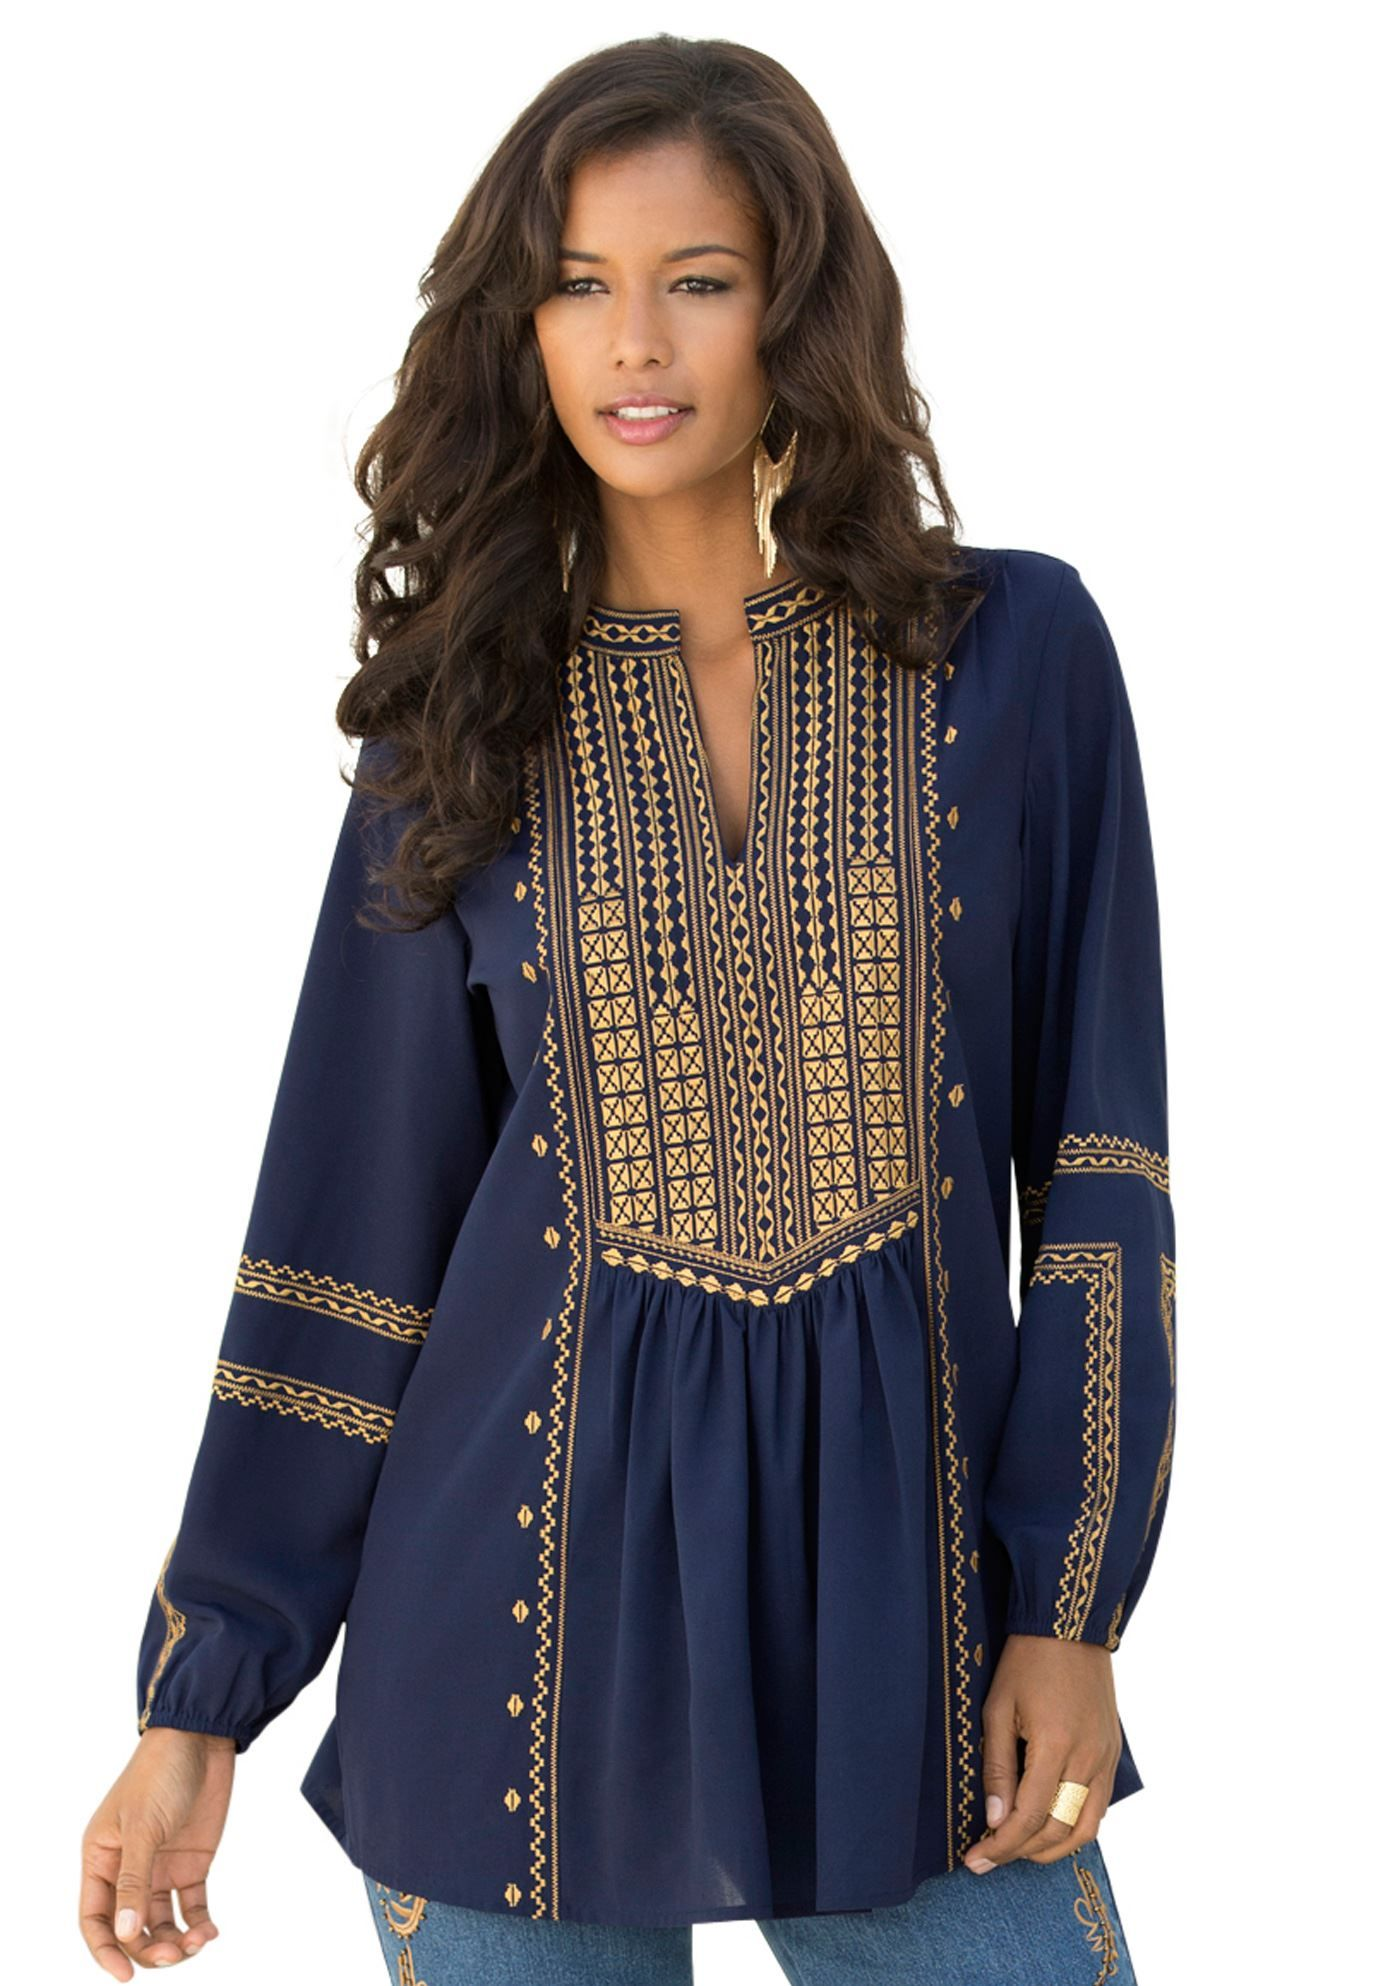 95aee5685060 This ultra stylish embroidered boho plus size tunic by denim 24/7 is ...